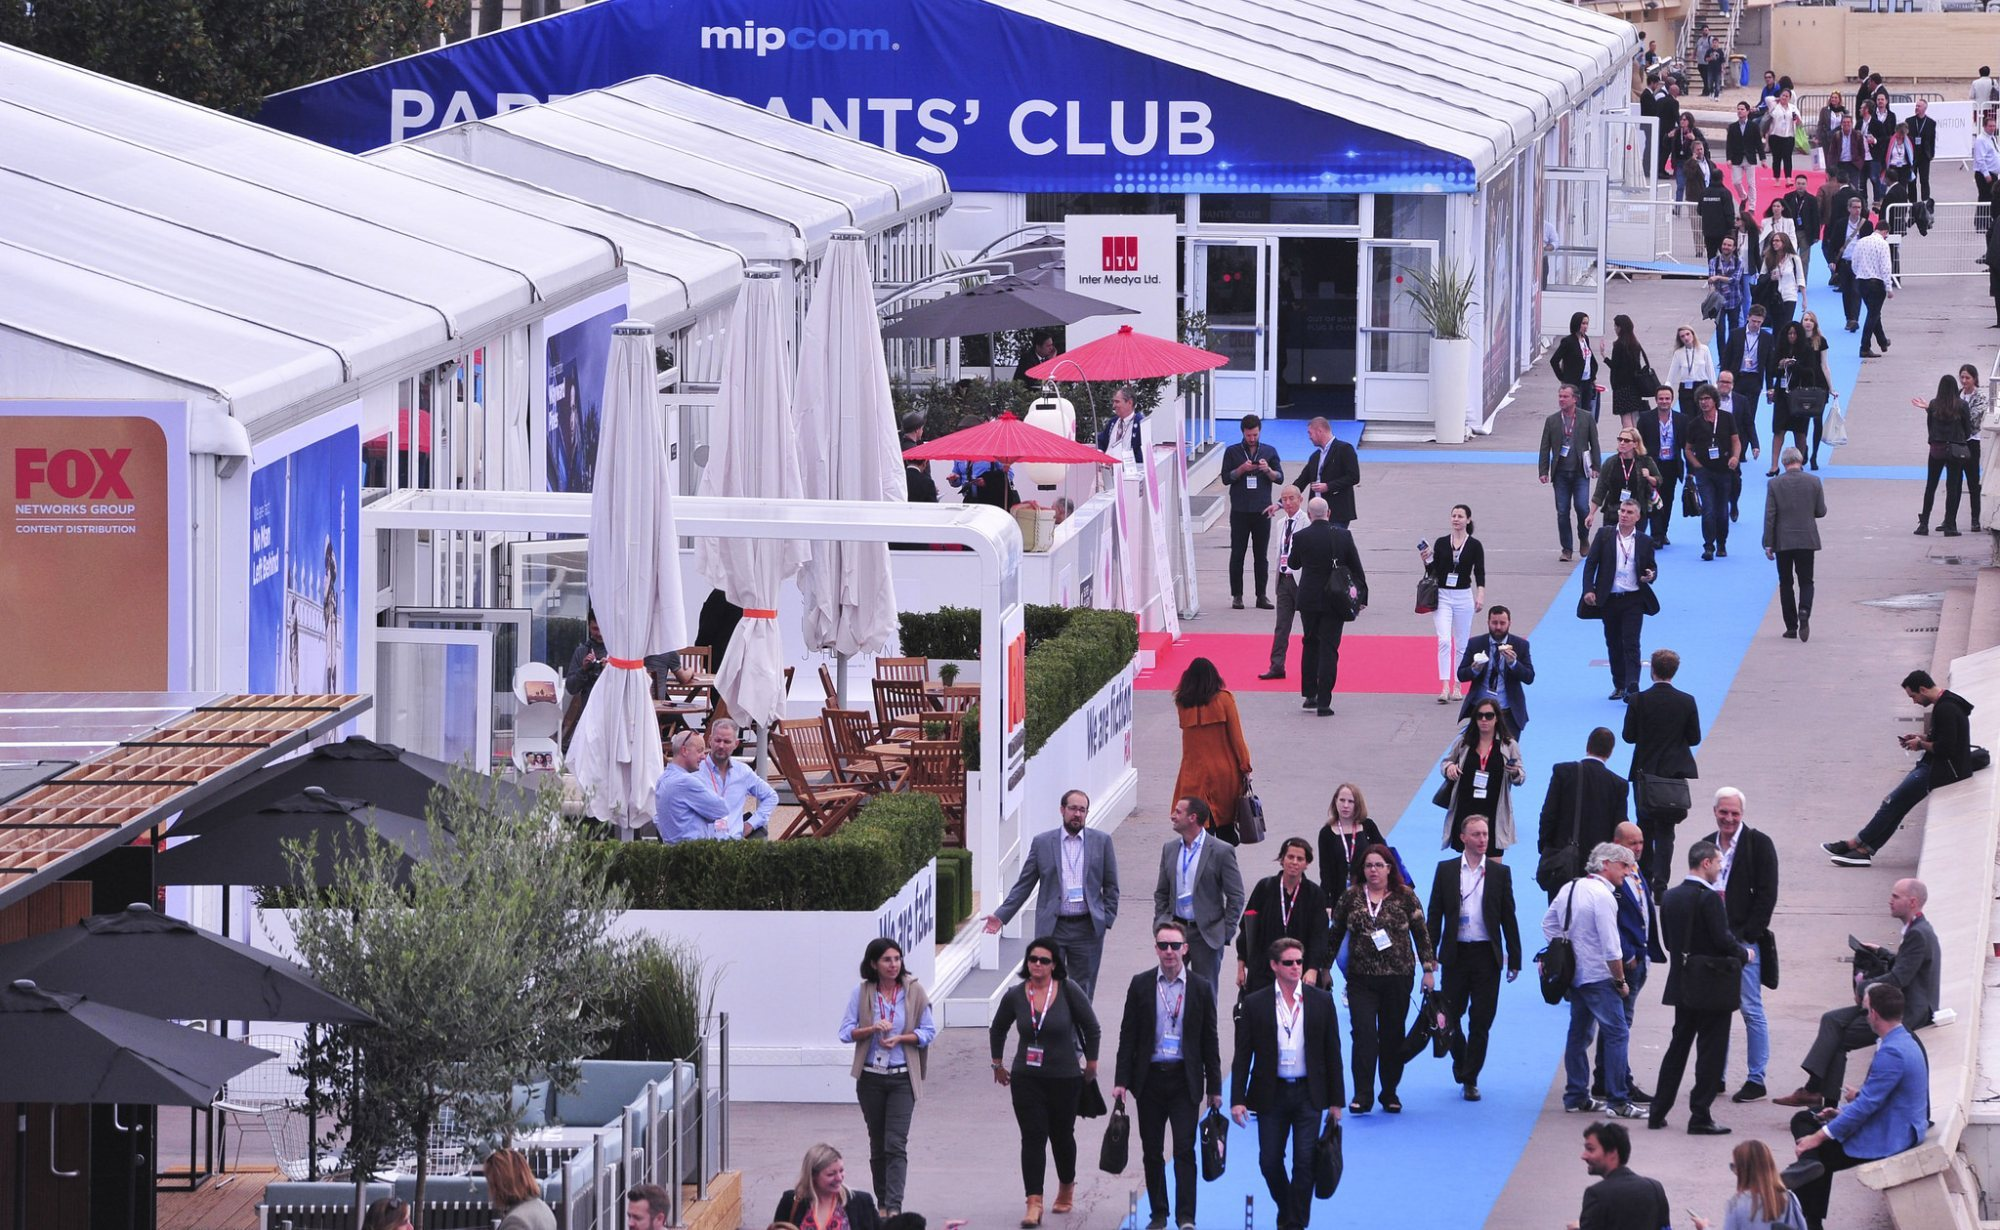 MIPCOM 2016 - ATMOSPHERE - OUTSIDE VIEW